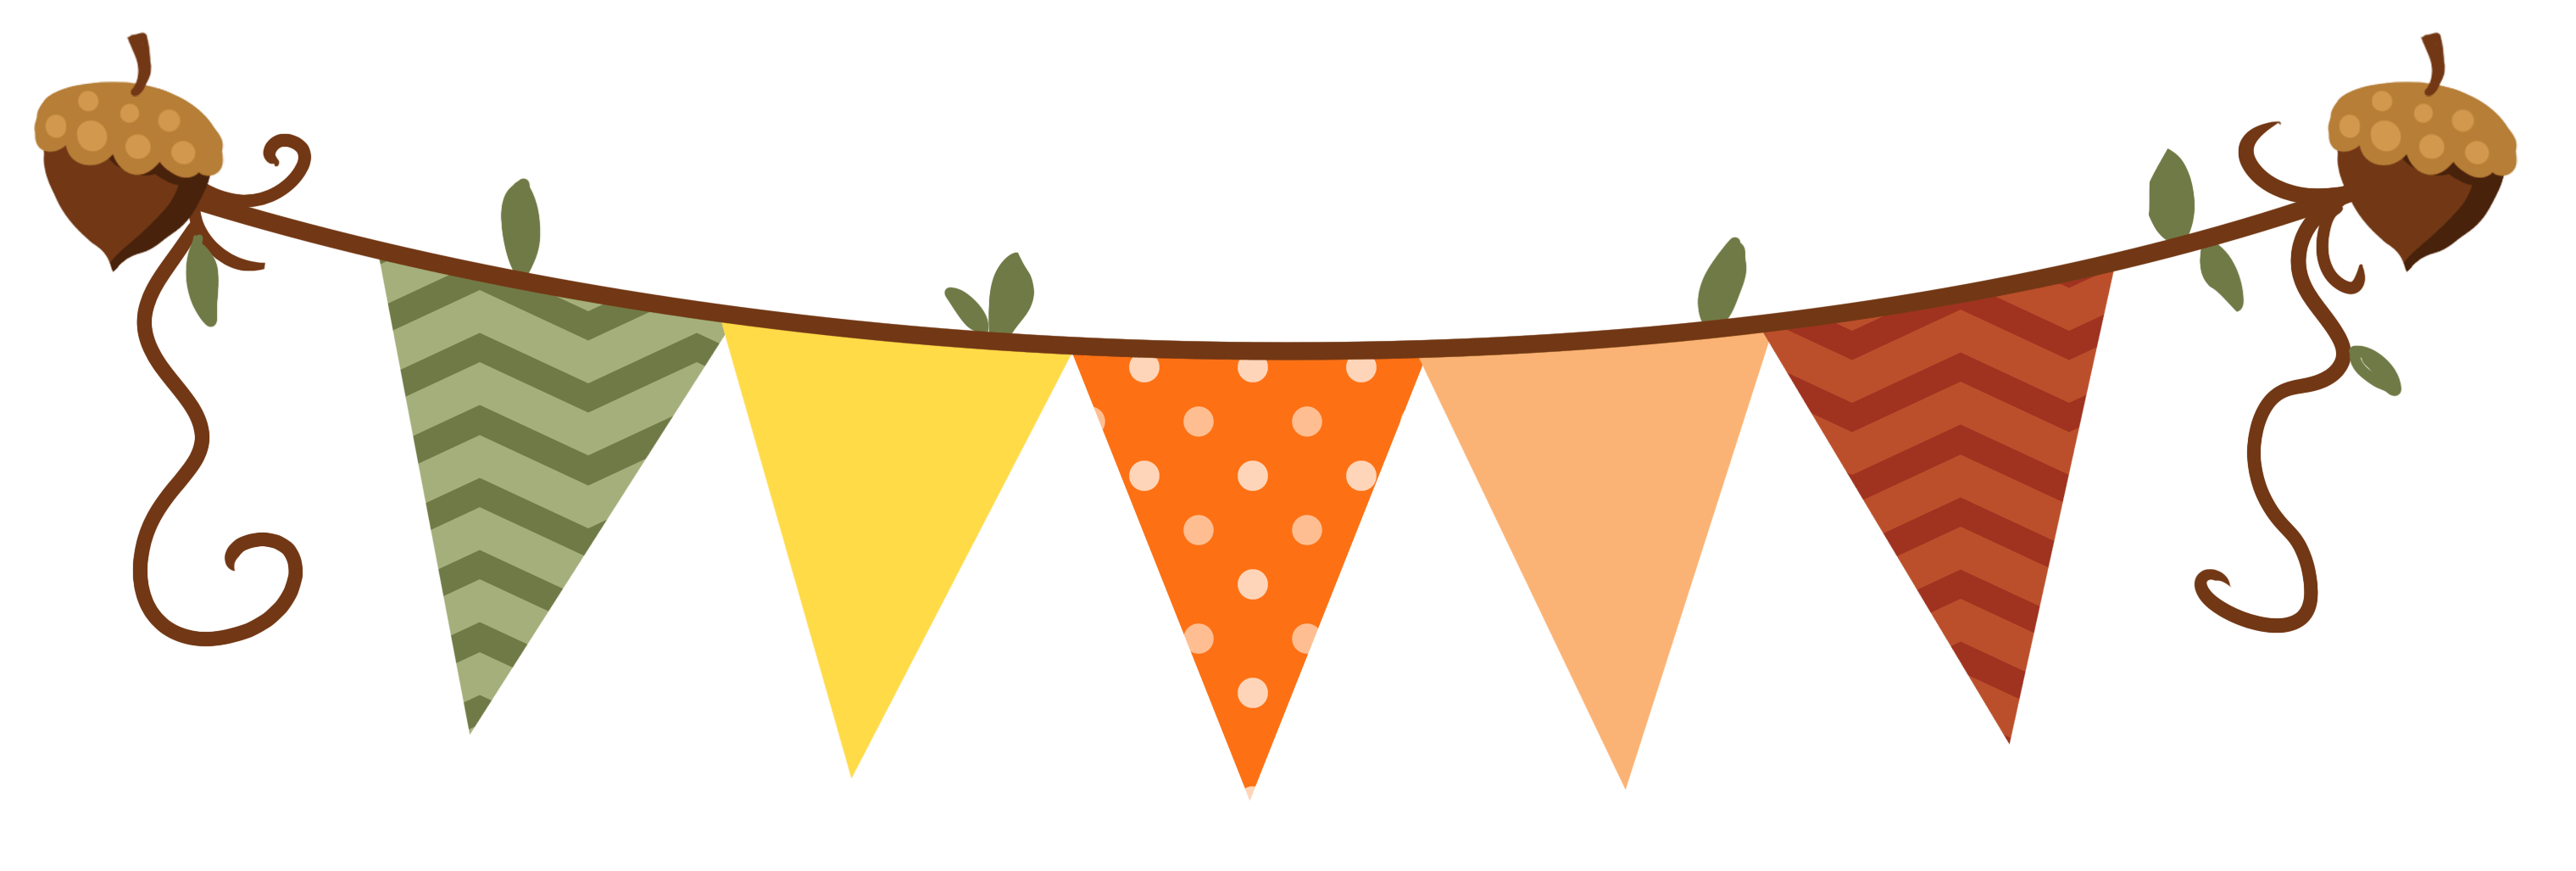 Fall clipart bunting, Fall bunting Transparent FREE for.